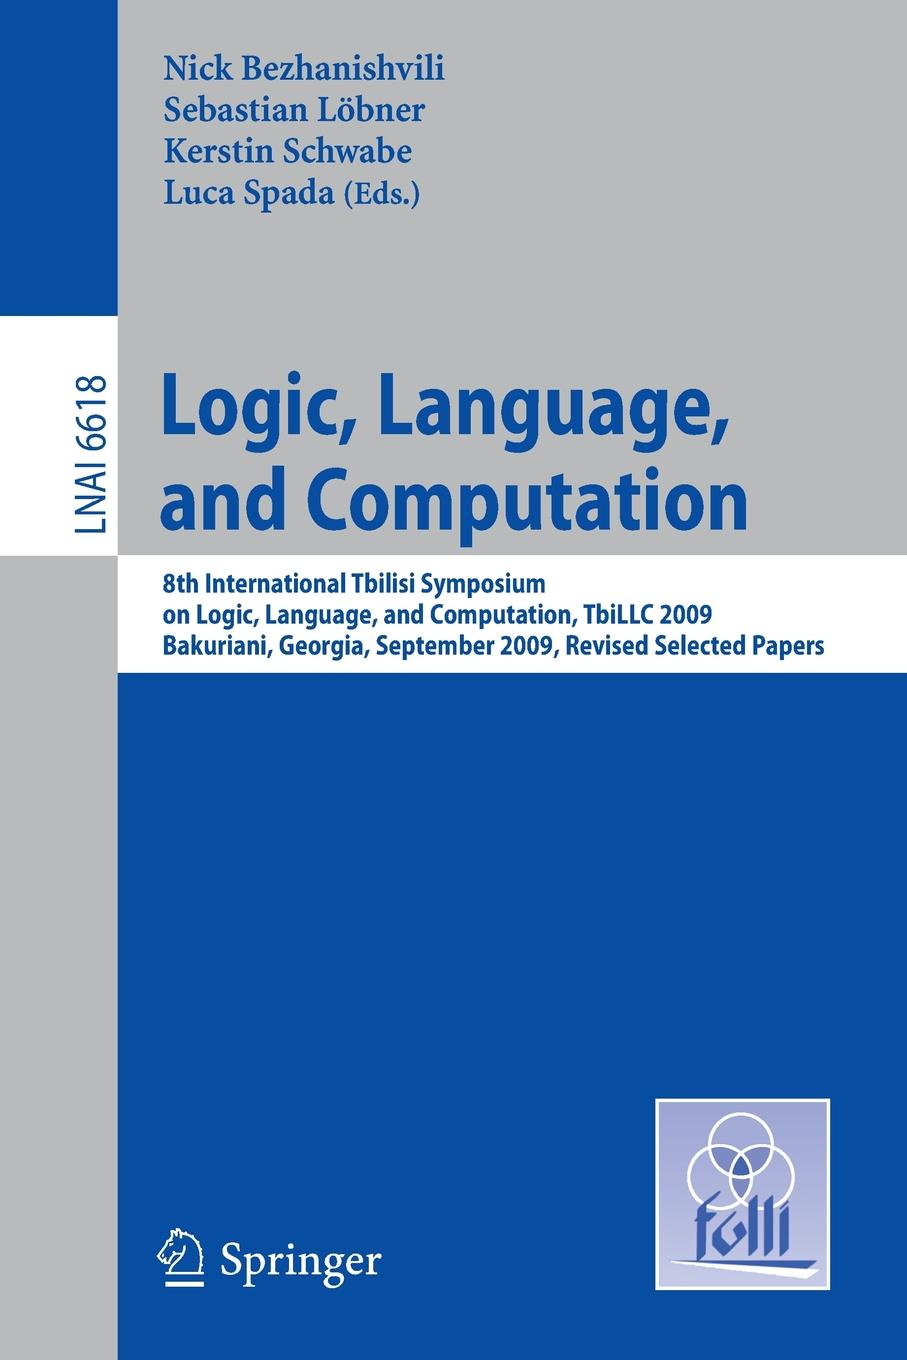 Logic, Language, and Computation. 8th International Tbilisi Symposium on Logic, Language, and Computation, TbiLLC 2009, Bakuriani, Georgia, September 21-25, 2009. Revised Selected Papers